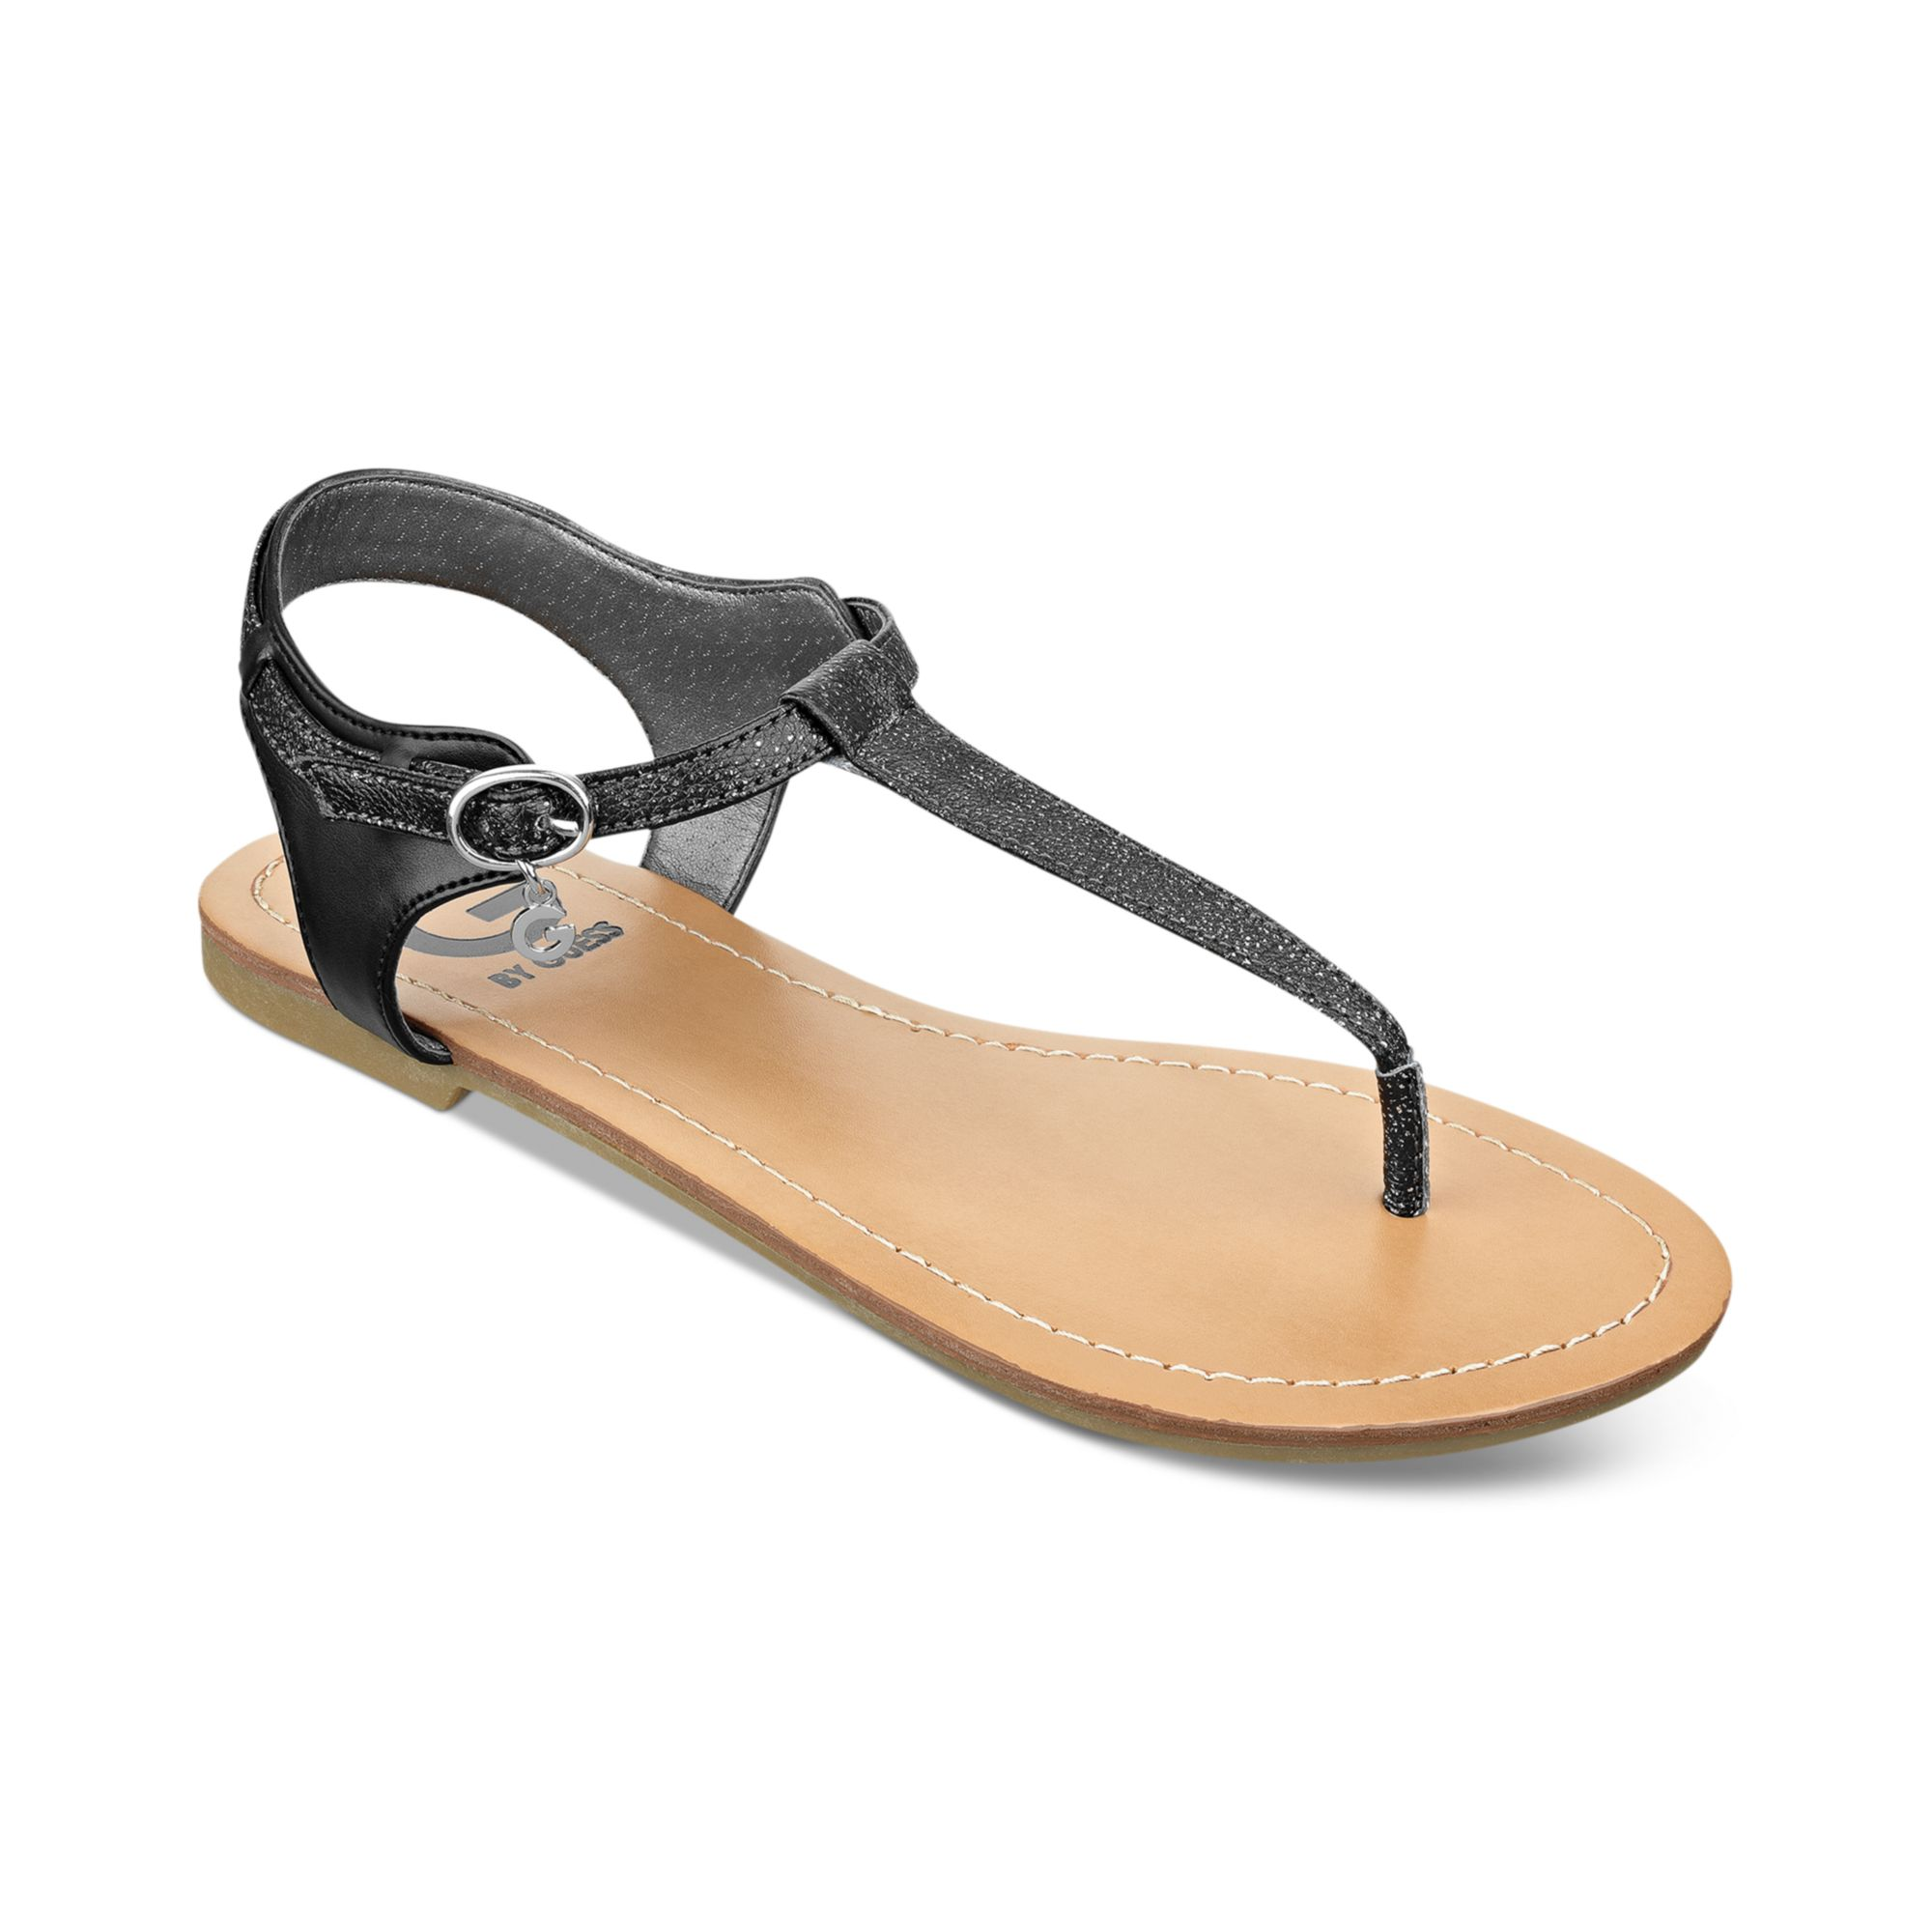 d7dc955c86b Lyst - G by Guess Womens Luzter Tstrap Flat Thong Sandals in Black